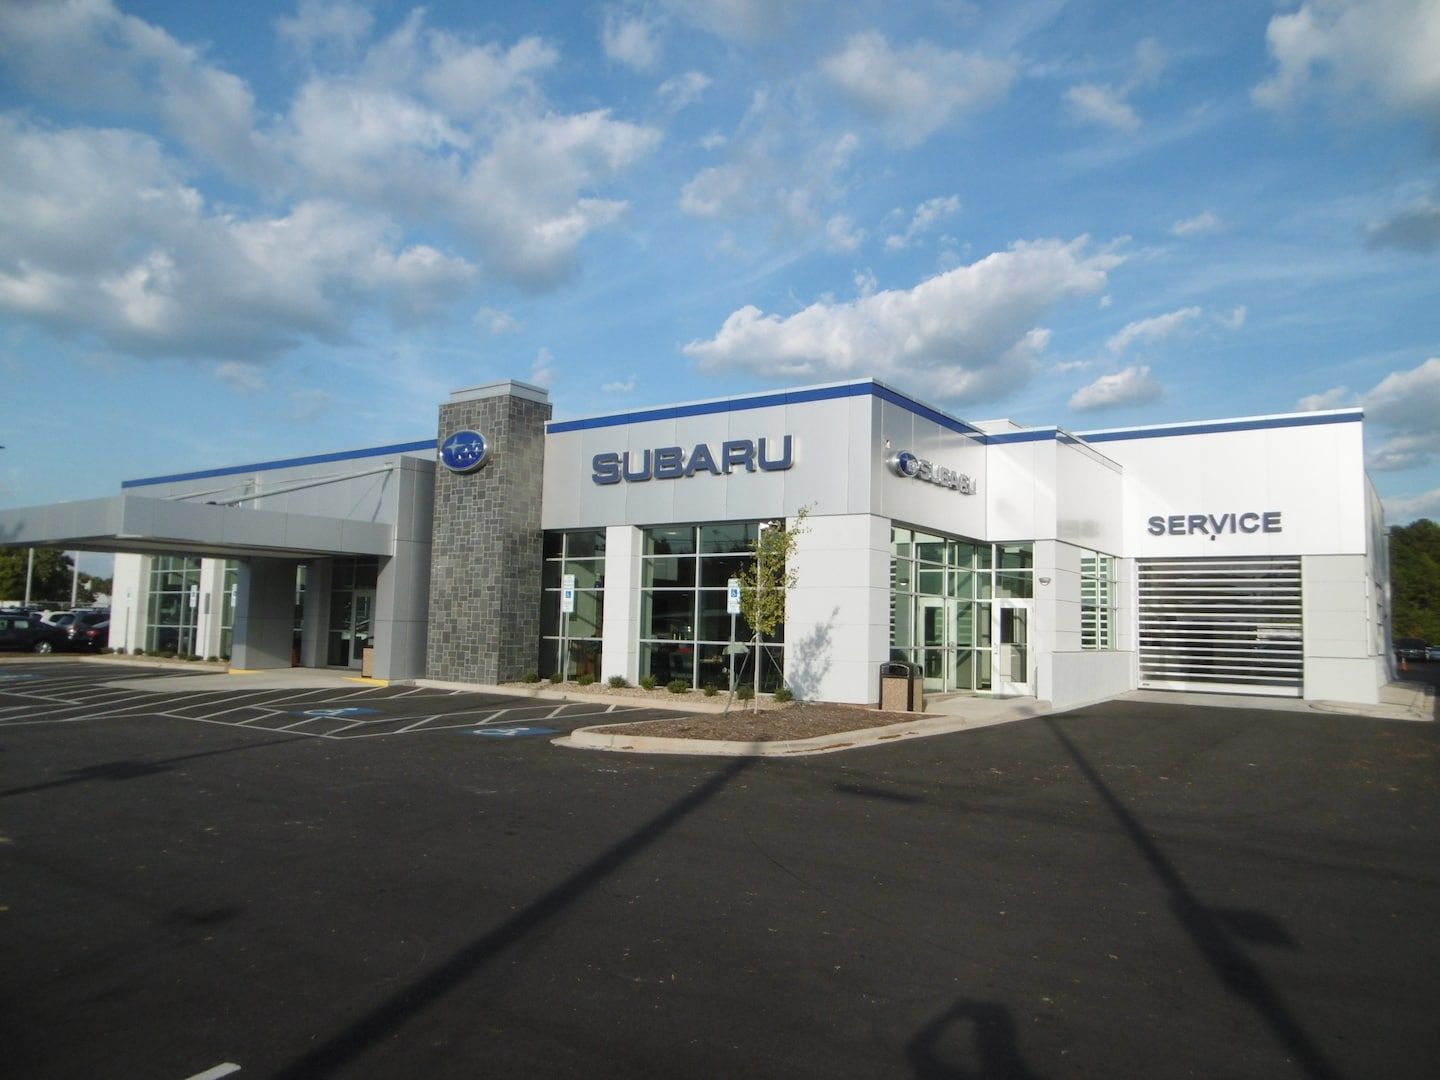 Subaru South Blvd